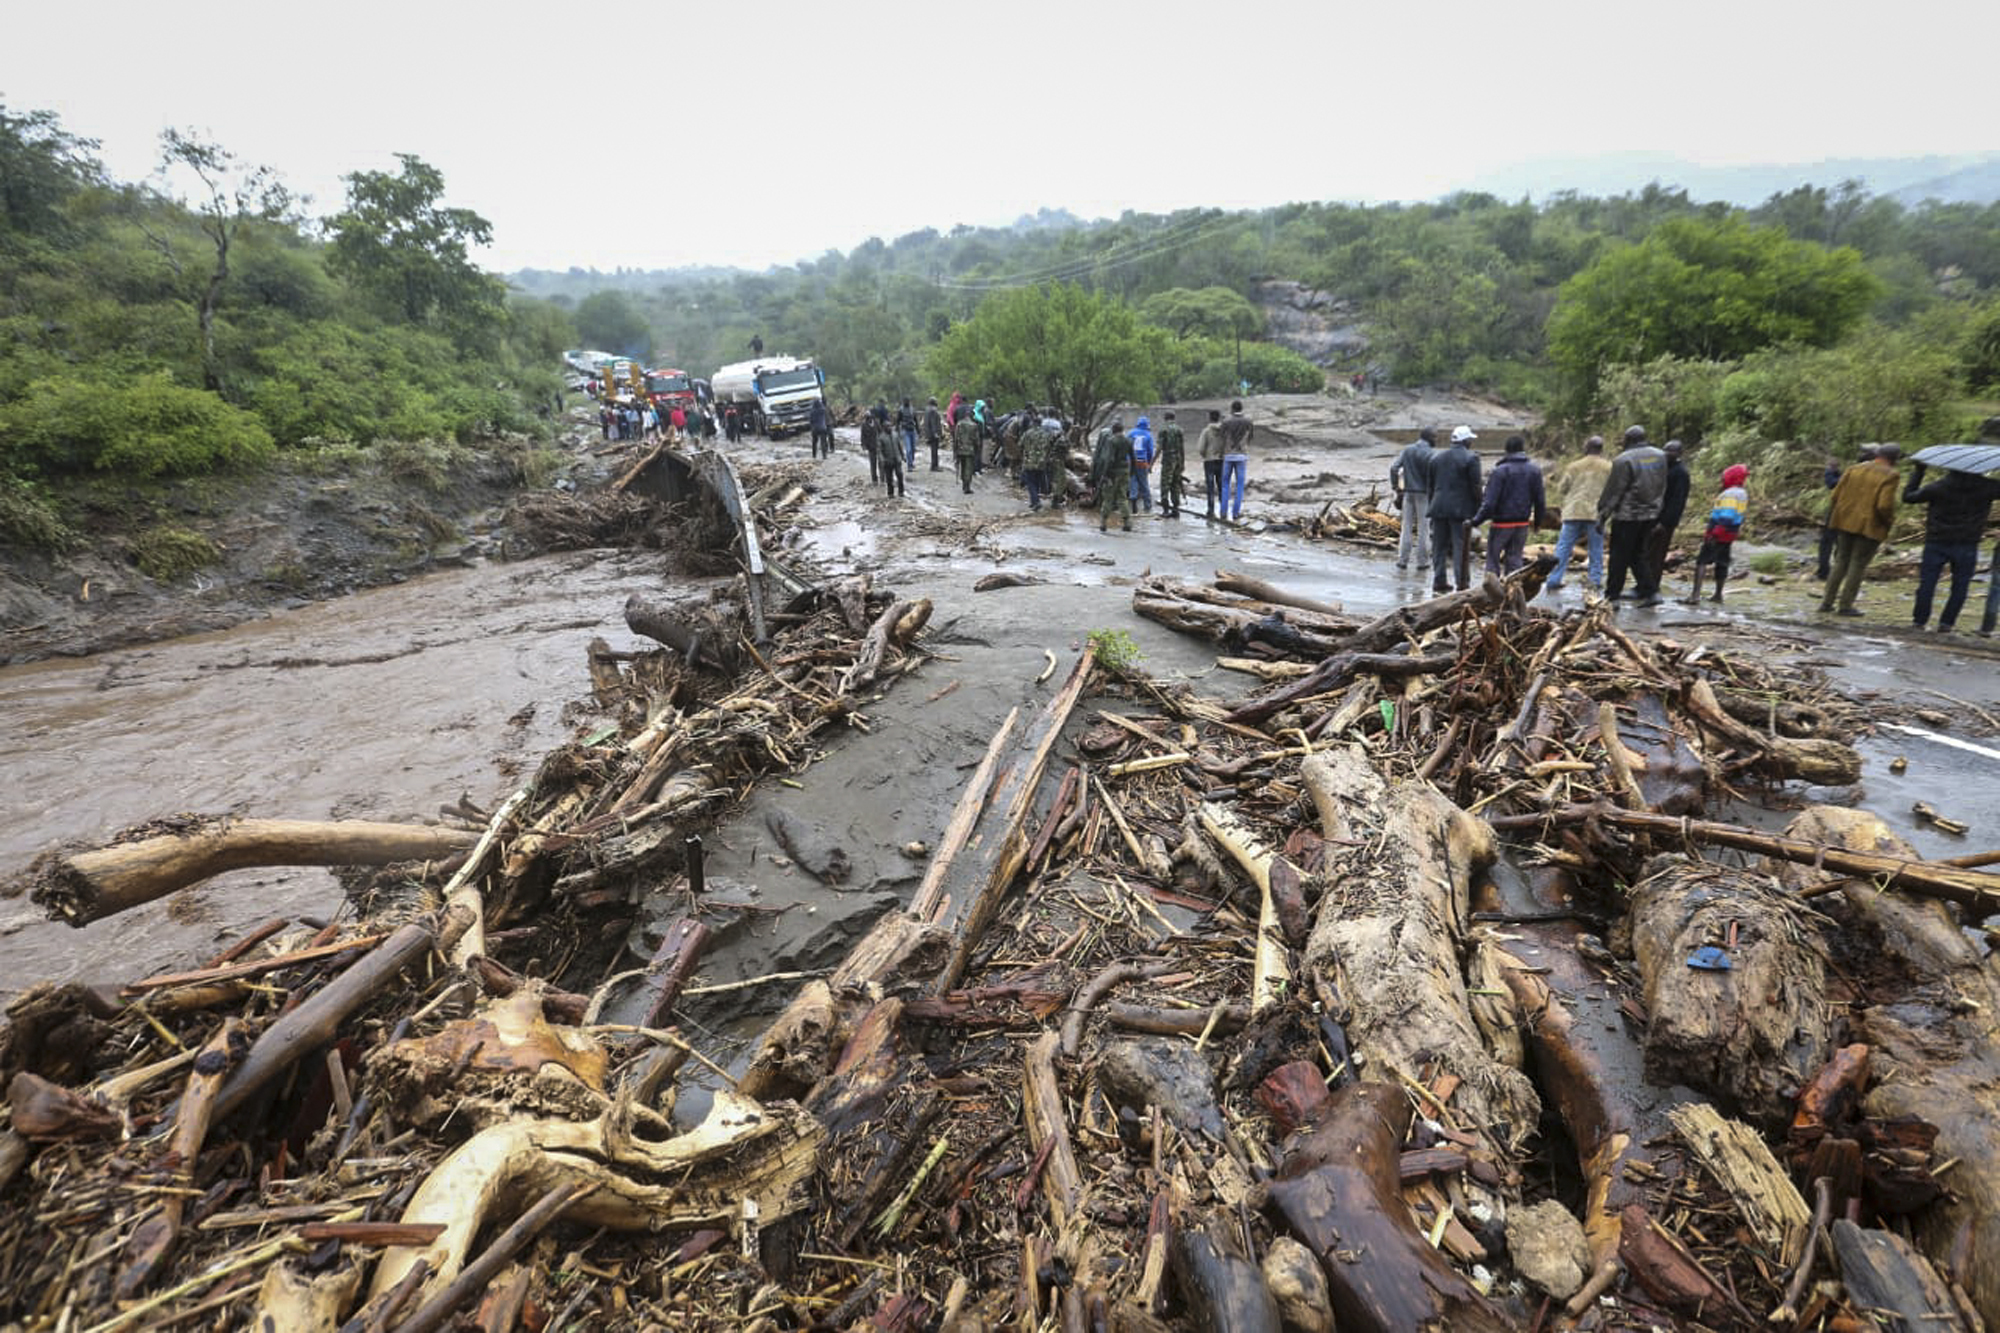 Passengers from stranded vehicles stand next to the debris from floodwaters, on the road from Kapenguria, in West Pokot county, in western Kenya Saturday, Nov. 23, 2019.